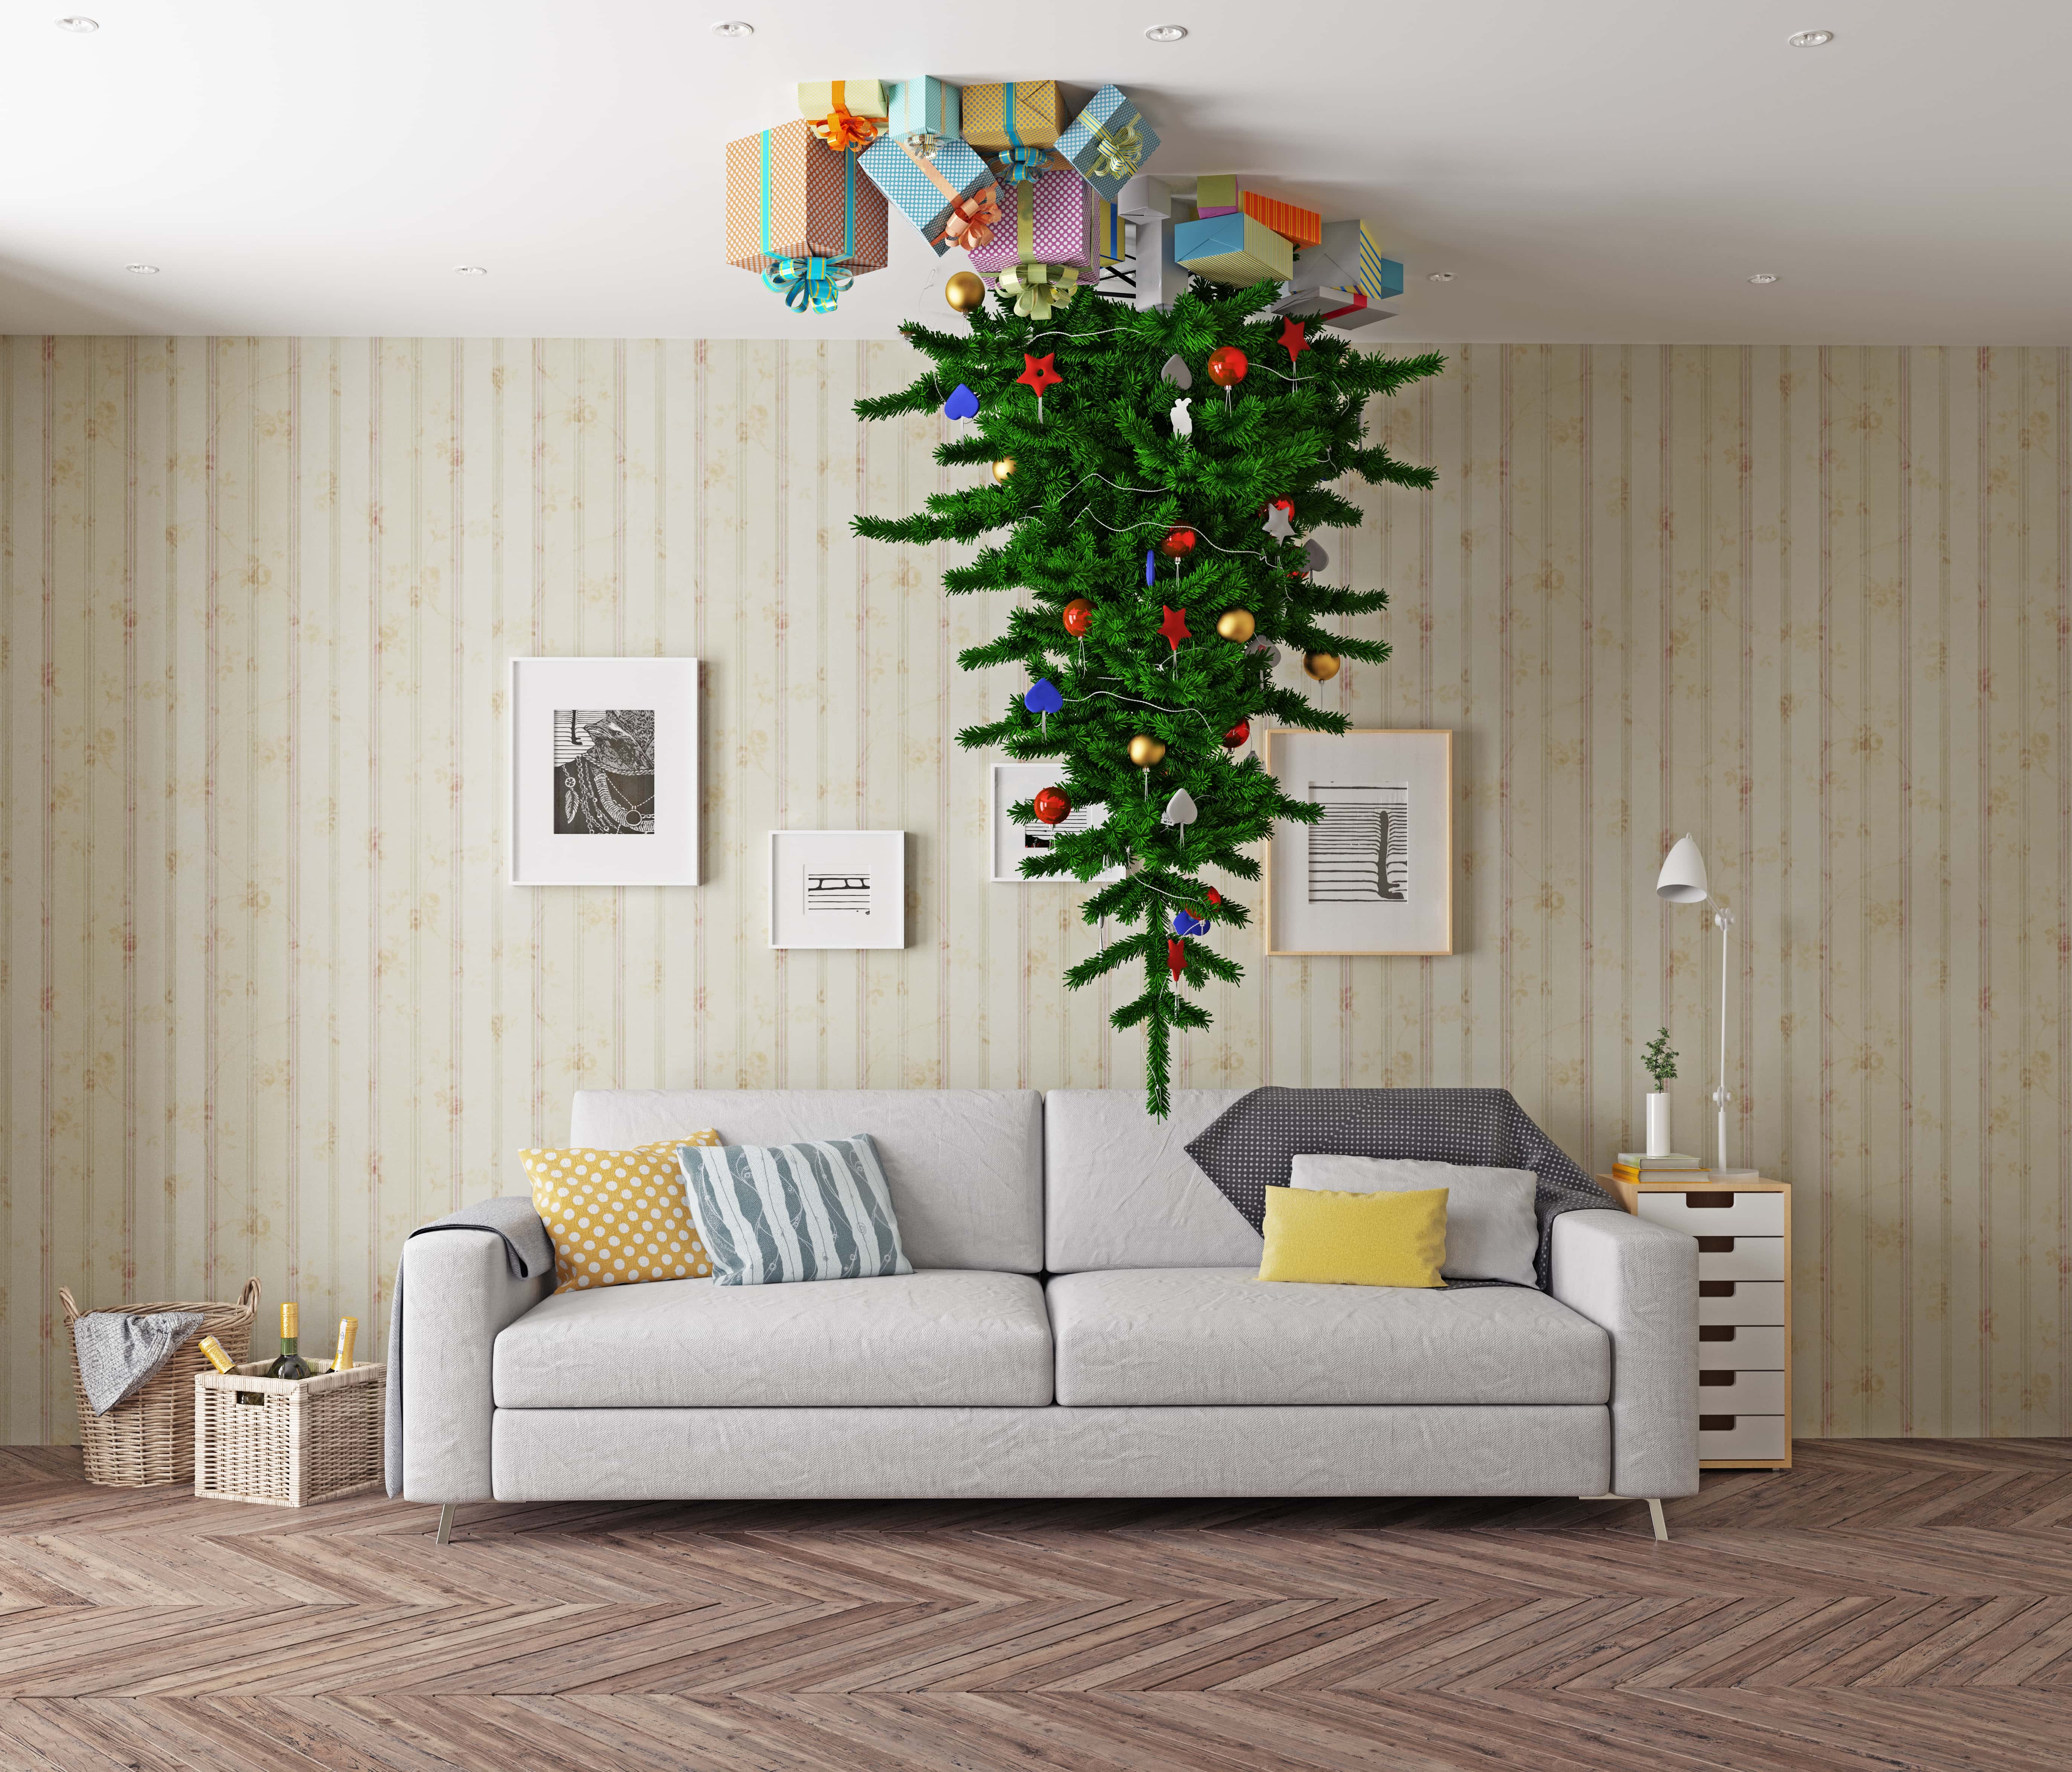 Upside-Down Christmas Trees Are Becoming a Big Trend This ...